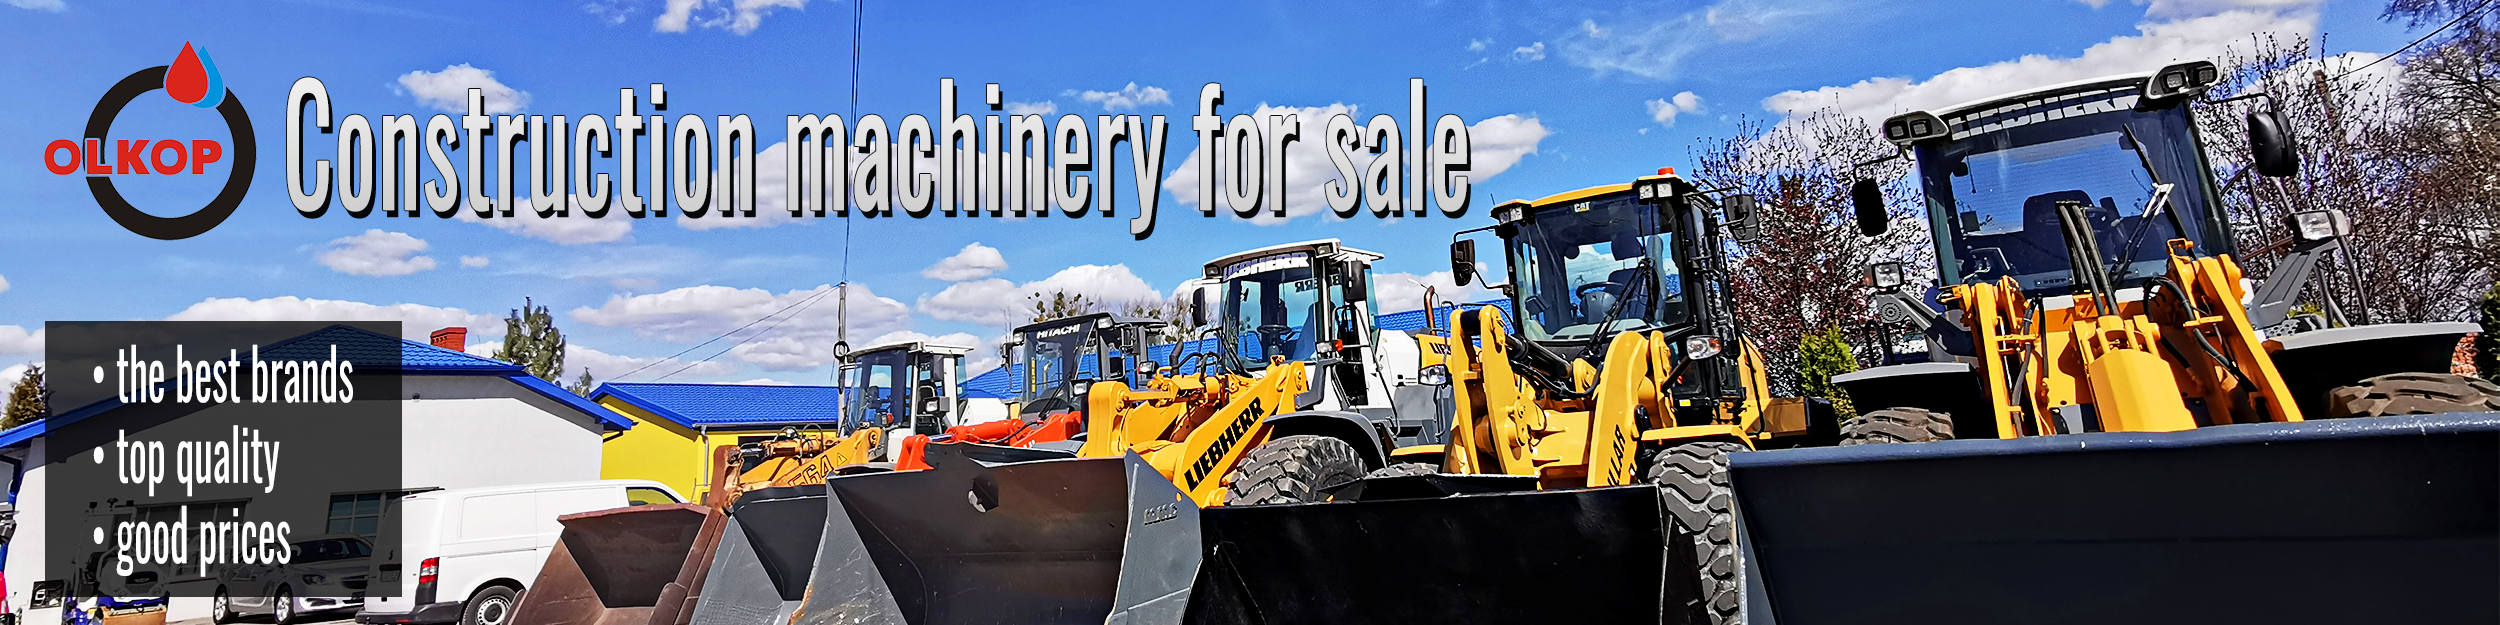 Construction machinery for sale